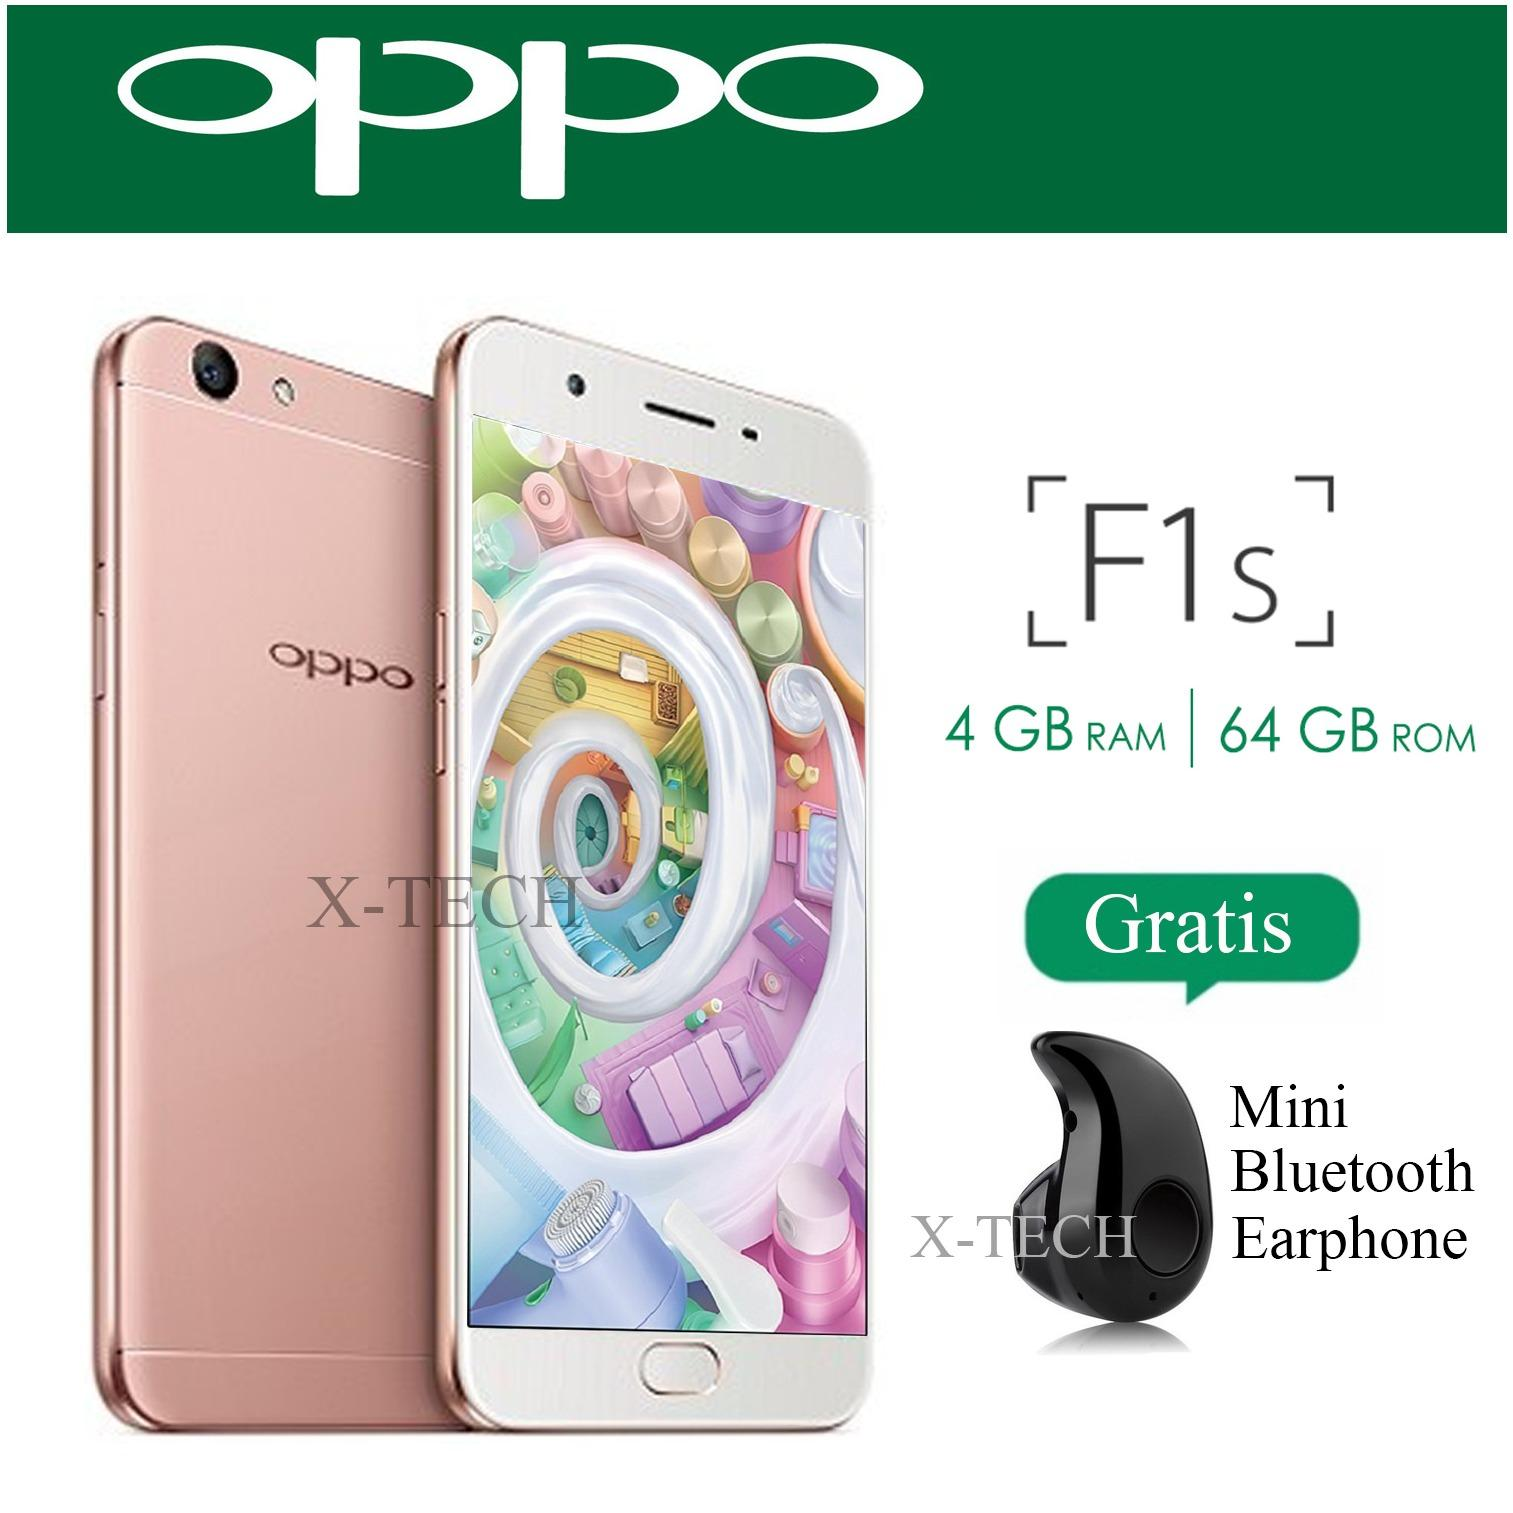 Oppo F1s - New Edition - Ram 4GB - Rom 64GB - 4G/LTE